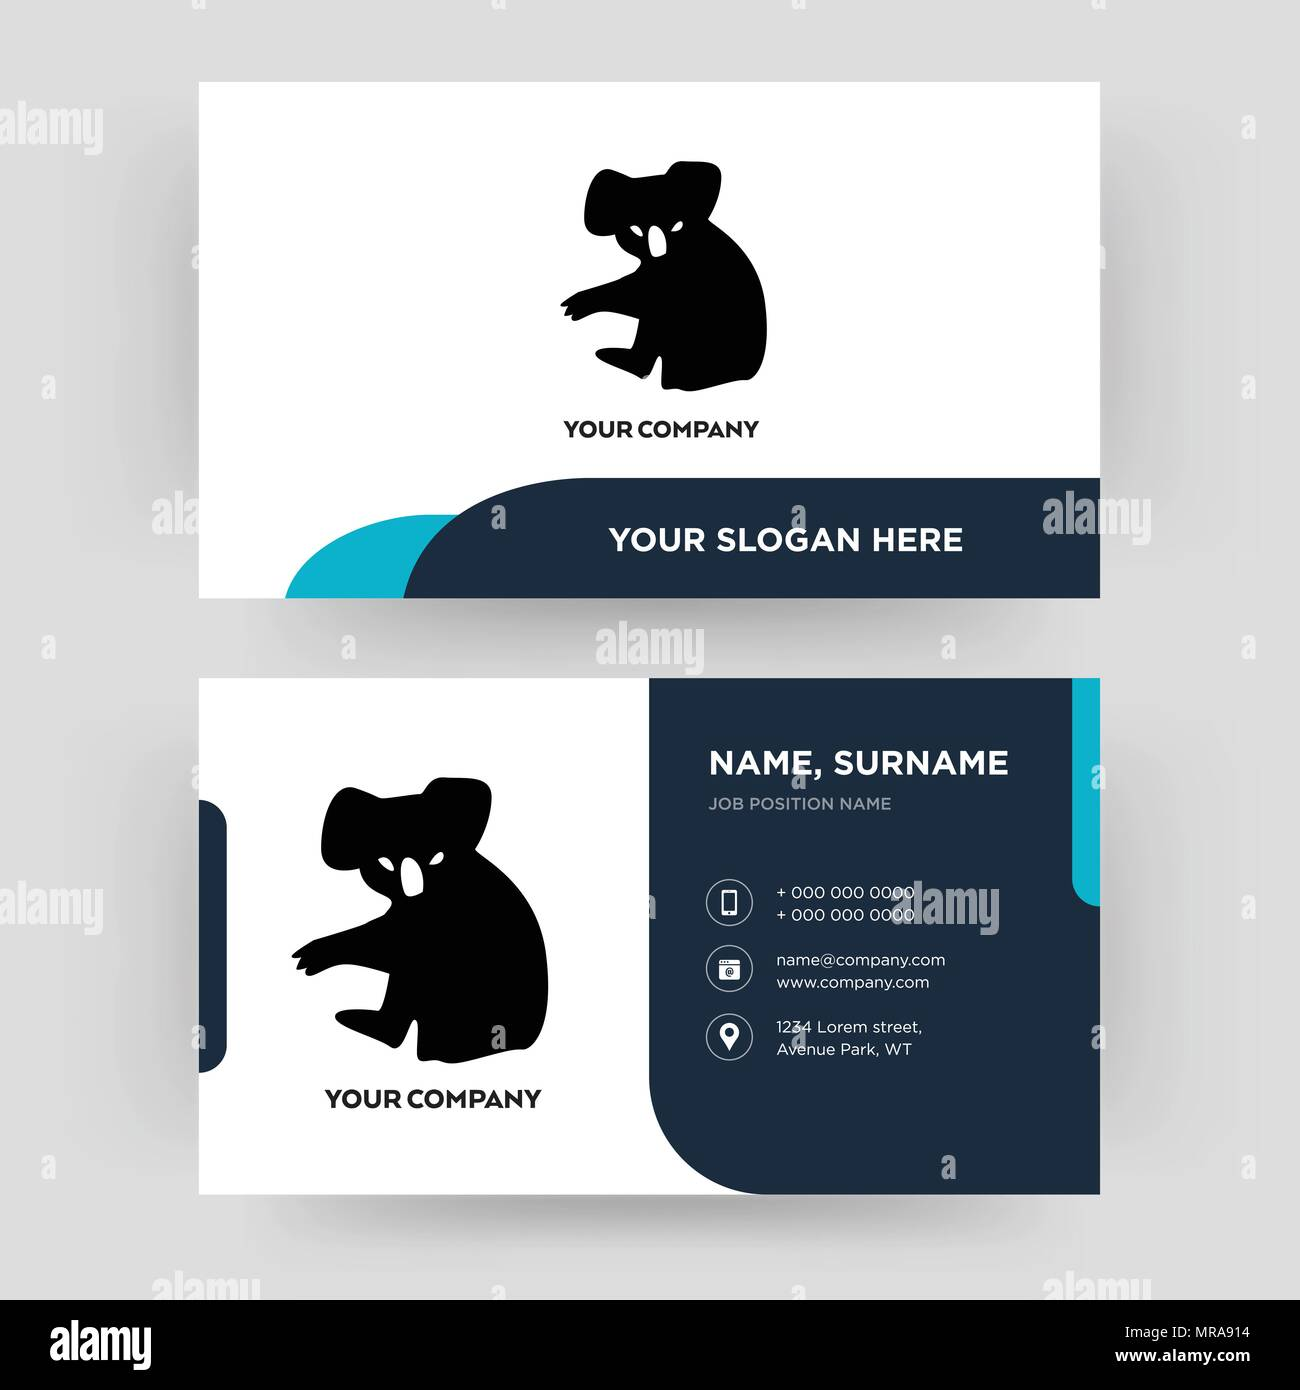 koala business card design template visiting for your company